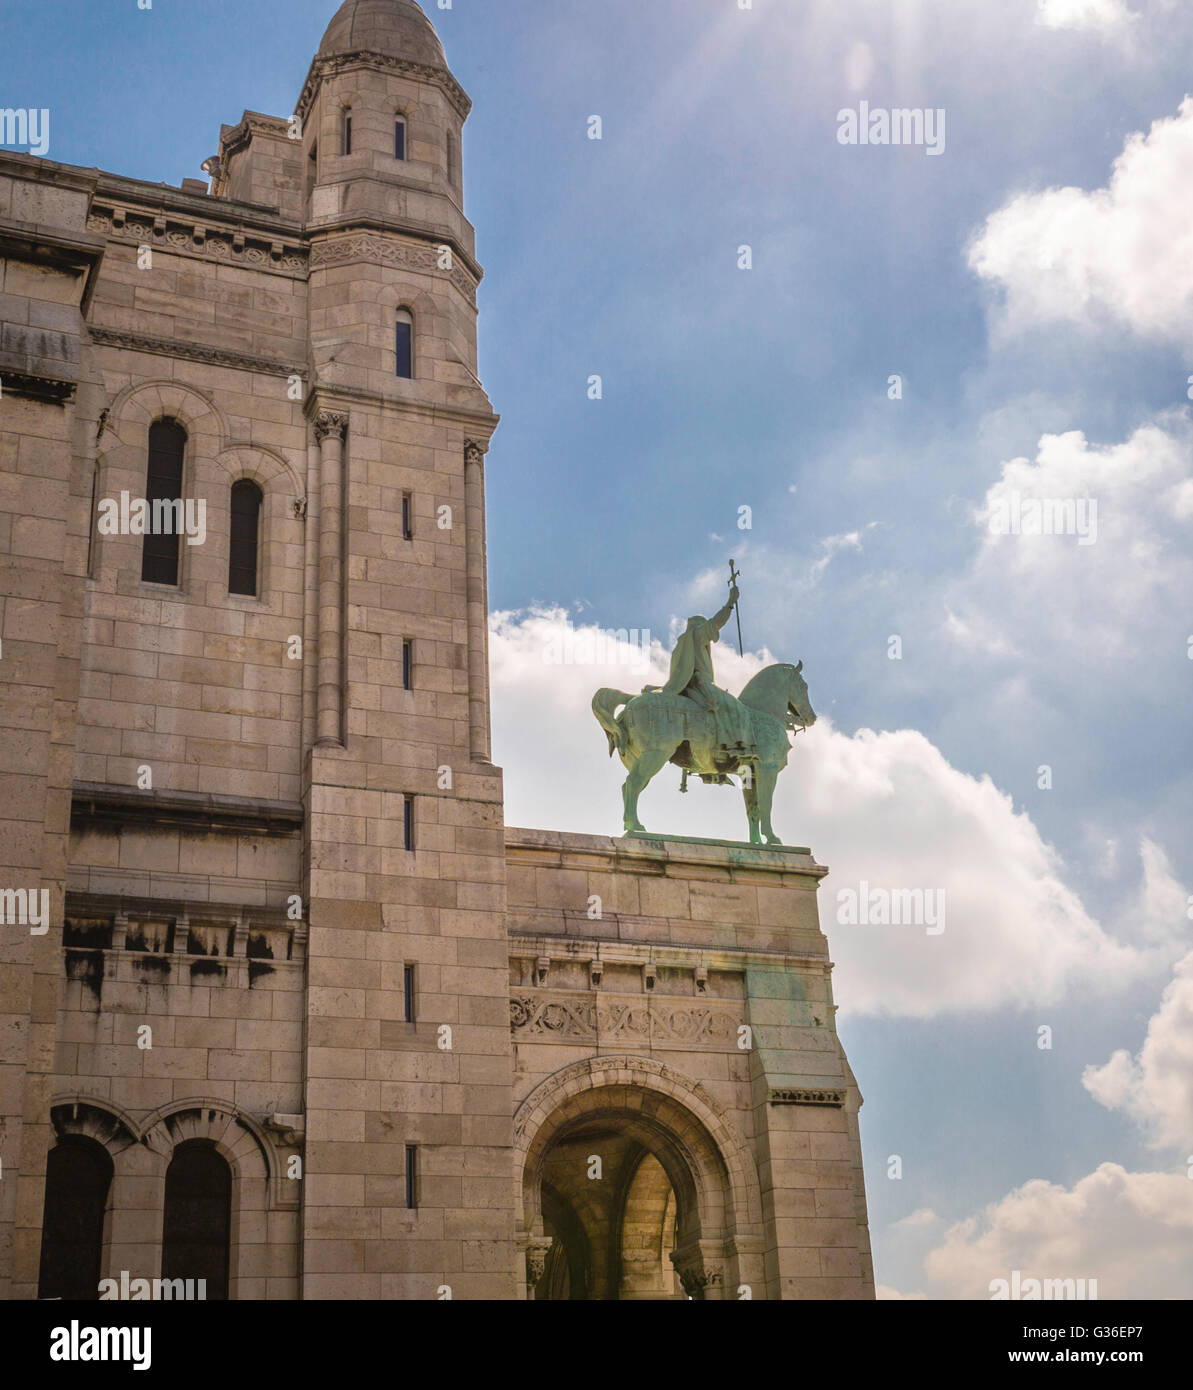 Equestrian statue of King Saint Louis with a sword over the entrance to Basilique du Sacre-Coeur, Paris Stock Photo